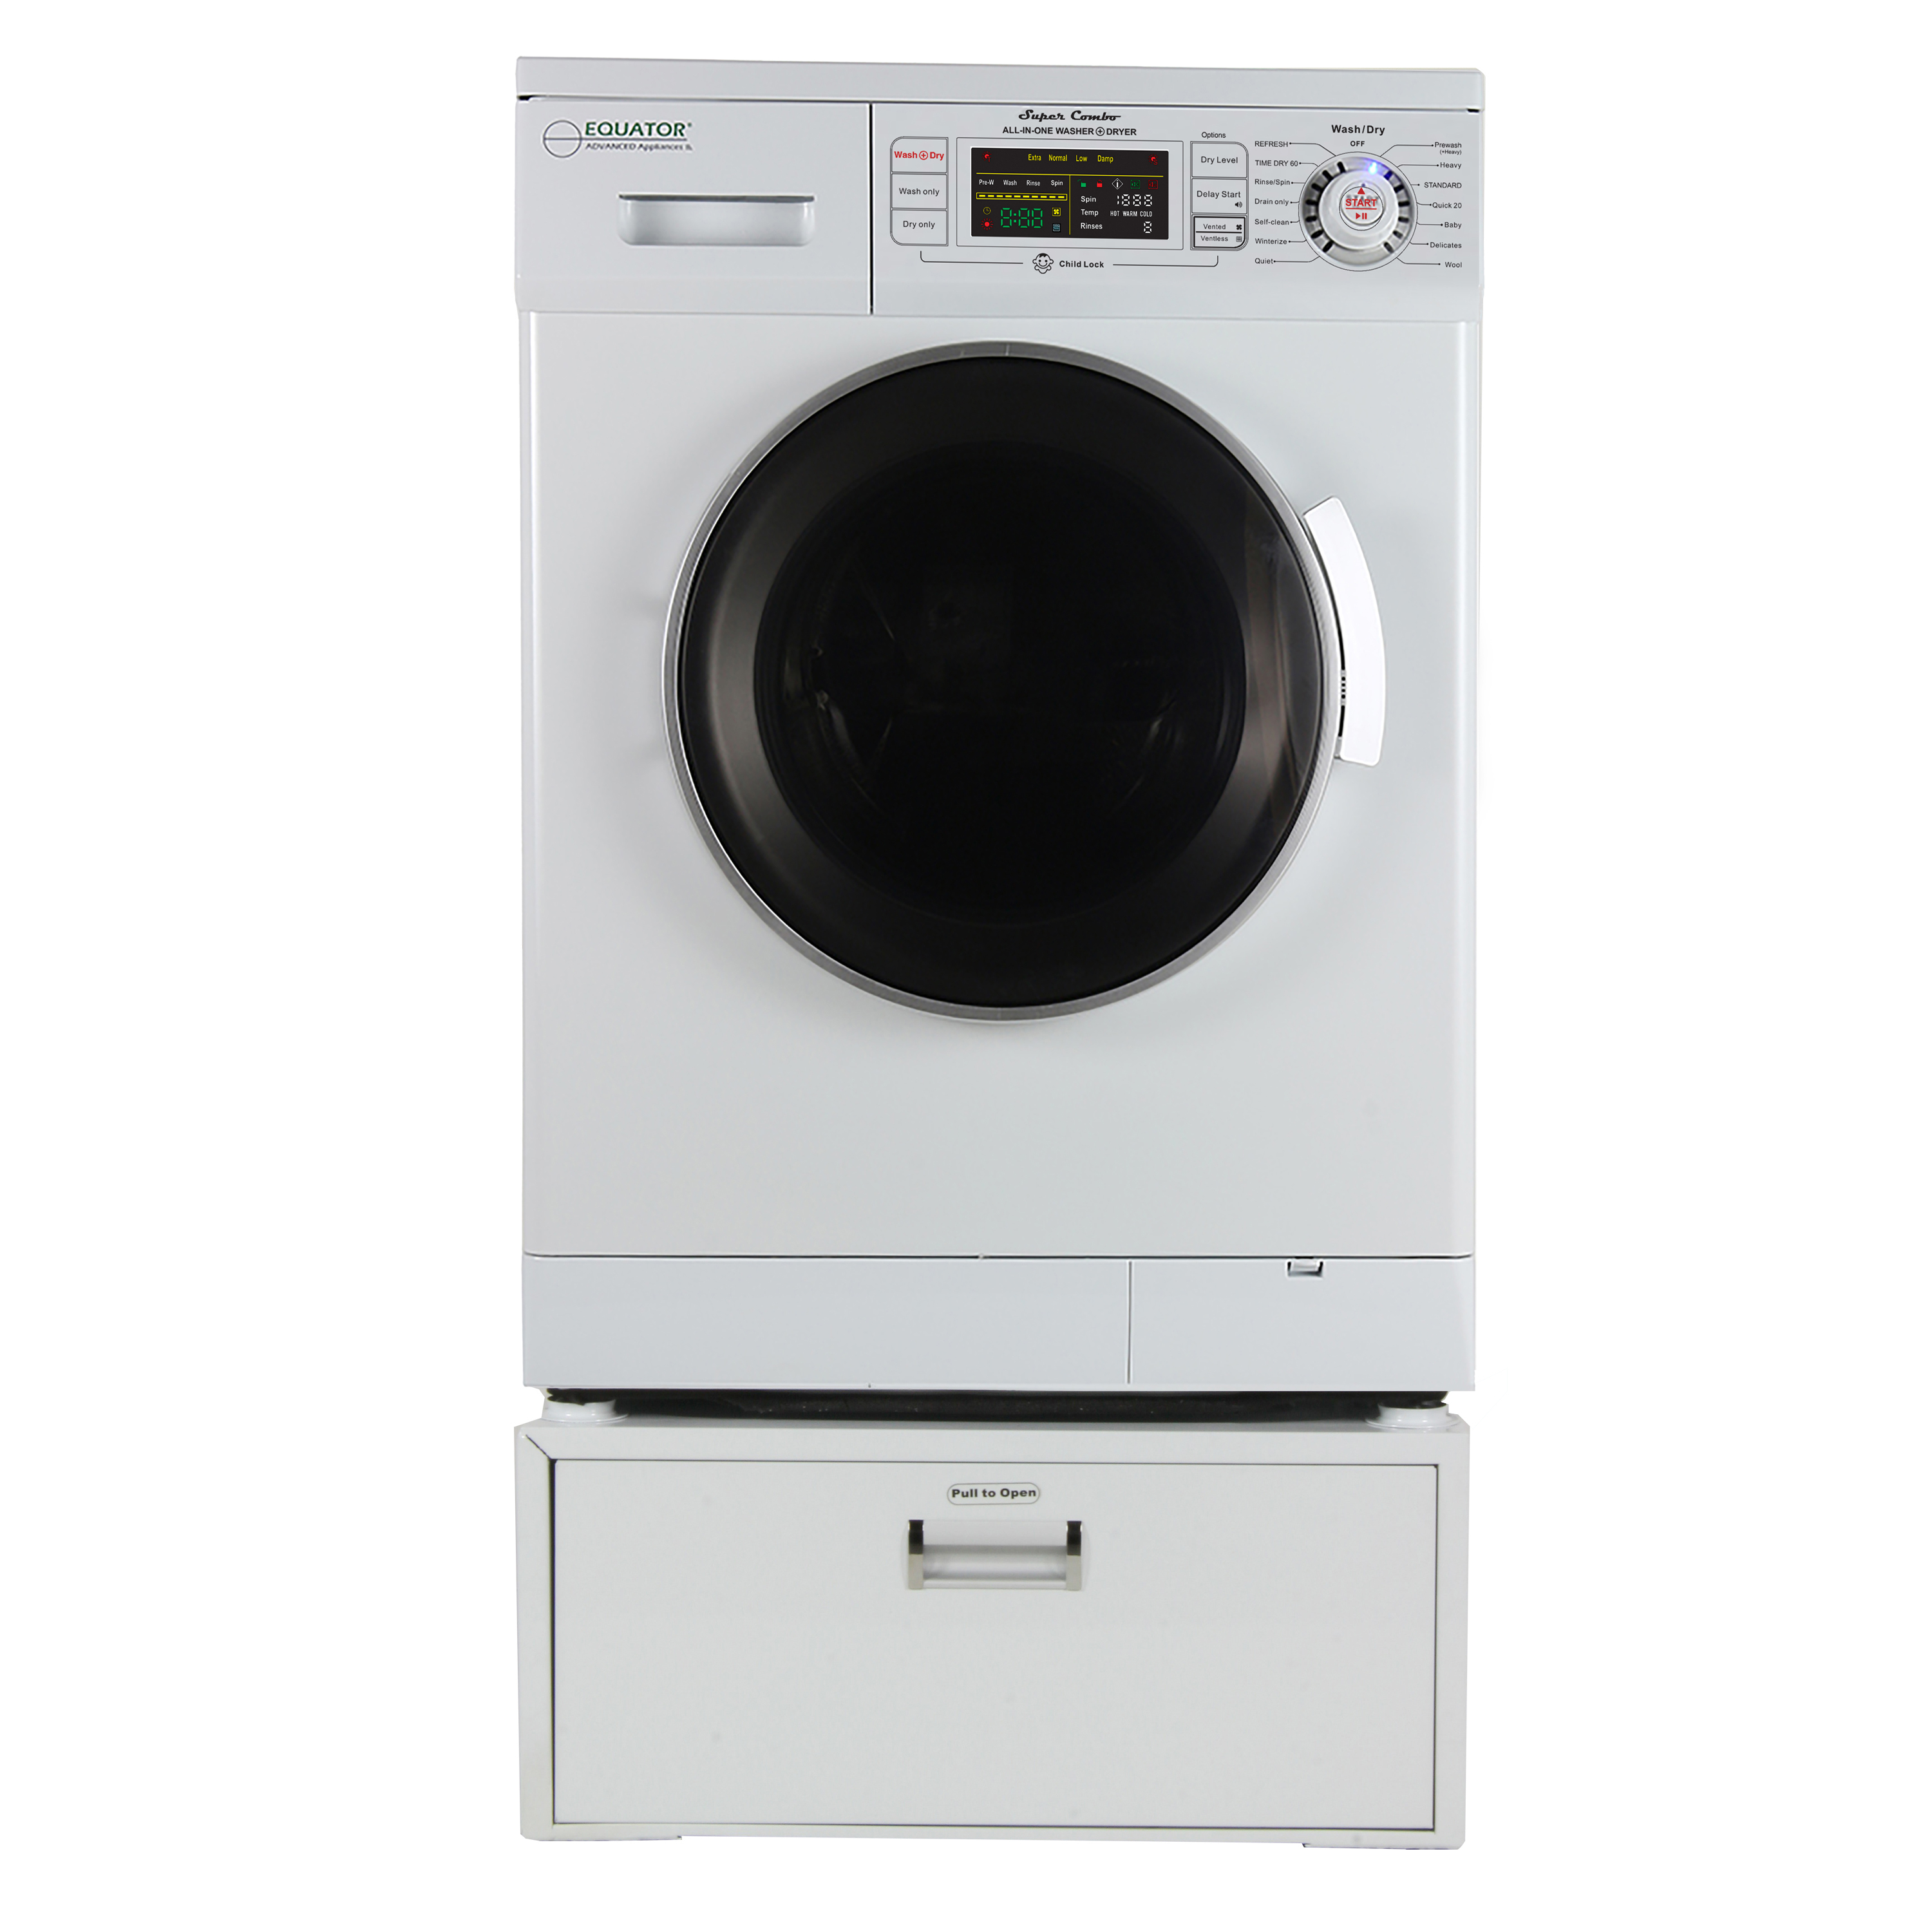 Equator EZ 4400 N White All-in-one New Compact Combo Washer Dryer with Pedestal Storage Drawer